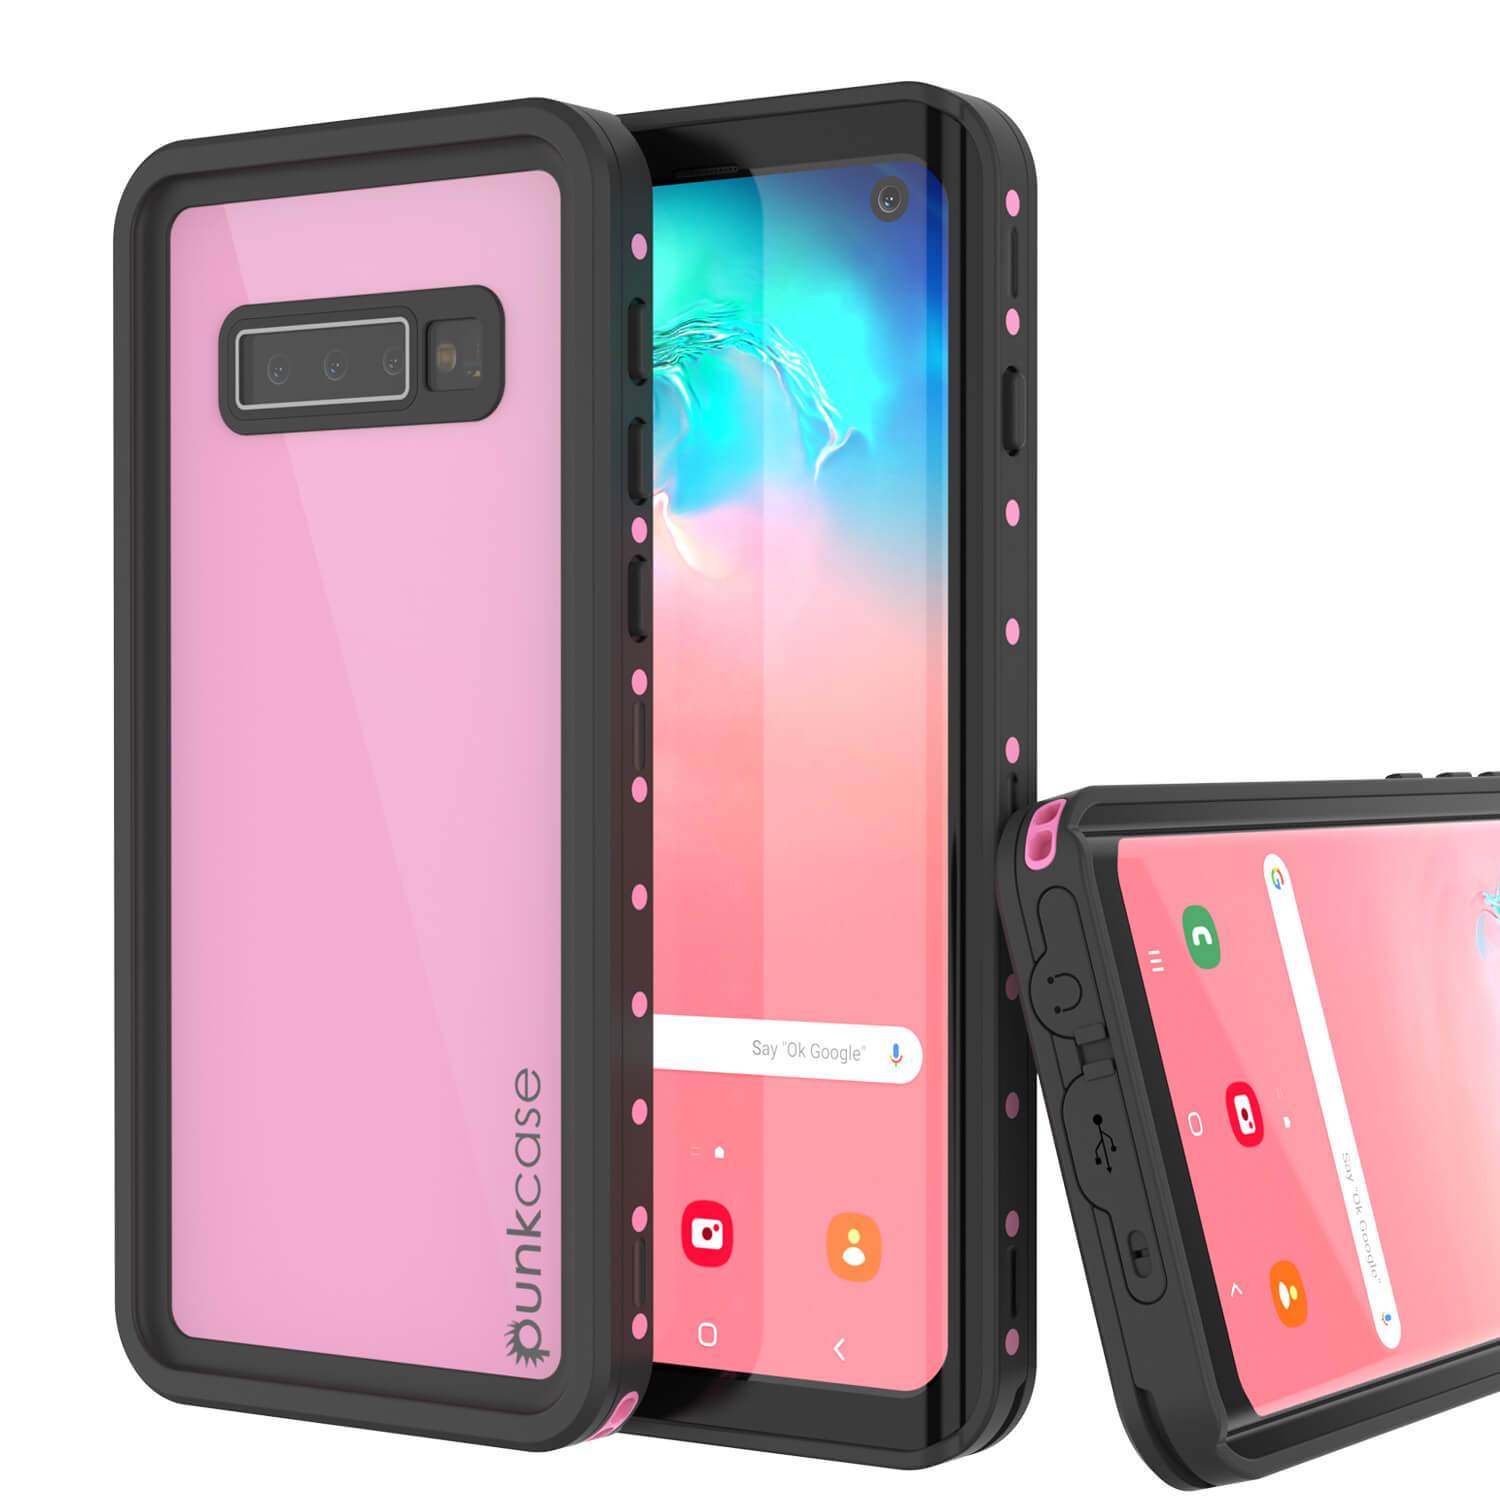 Galaxy A10e Waterproof Case PunkCase StudStar Pink Thin 6.6ft Underwater IP68 Shock/Snow Proof